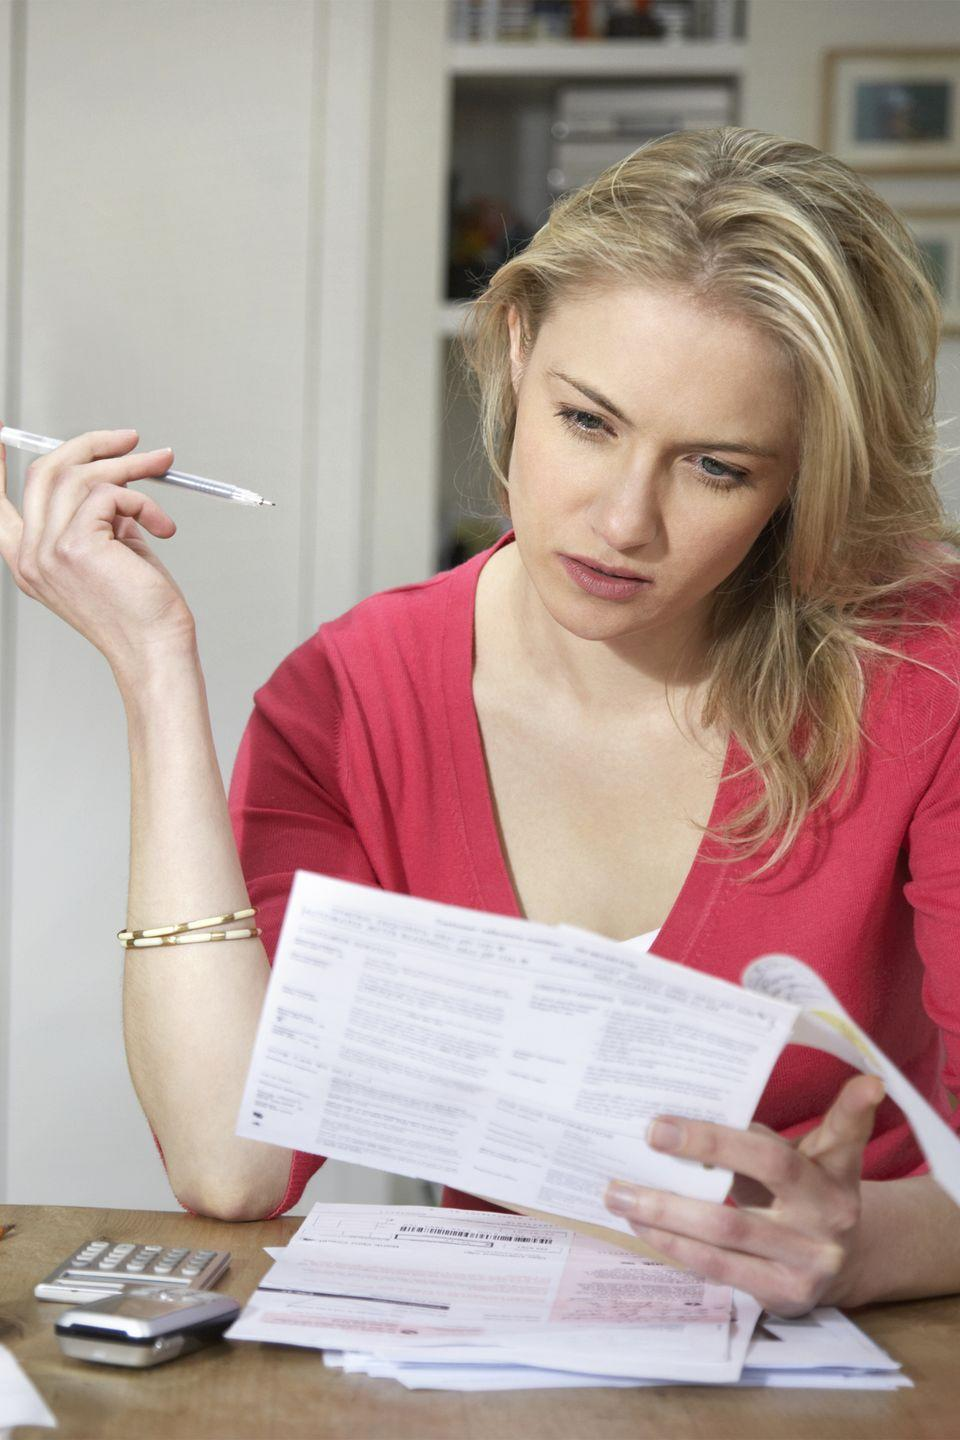 """<p>Creditors will shift your payment due dates so that you can lump them all together, or split them between the two pay periods of each month. Oh, and make sure to <a href=""""https://www.womansday.com/home/organizing-cleaning/a53760/documents-you-need-to-shred/"""" rel=""""nofollow noopener"""" target=""""_blank"""" data-ylk=""""slk:shred your statements"""" class=""""link rapid-noclick-resp"""">shred your statements</a>, don't just toss them in the trash. </p>"""